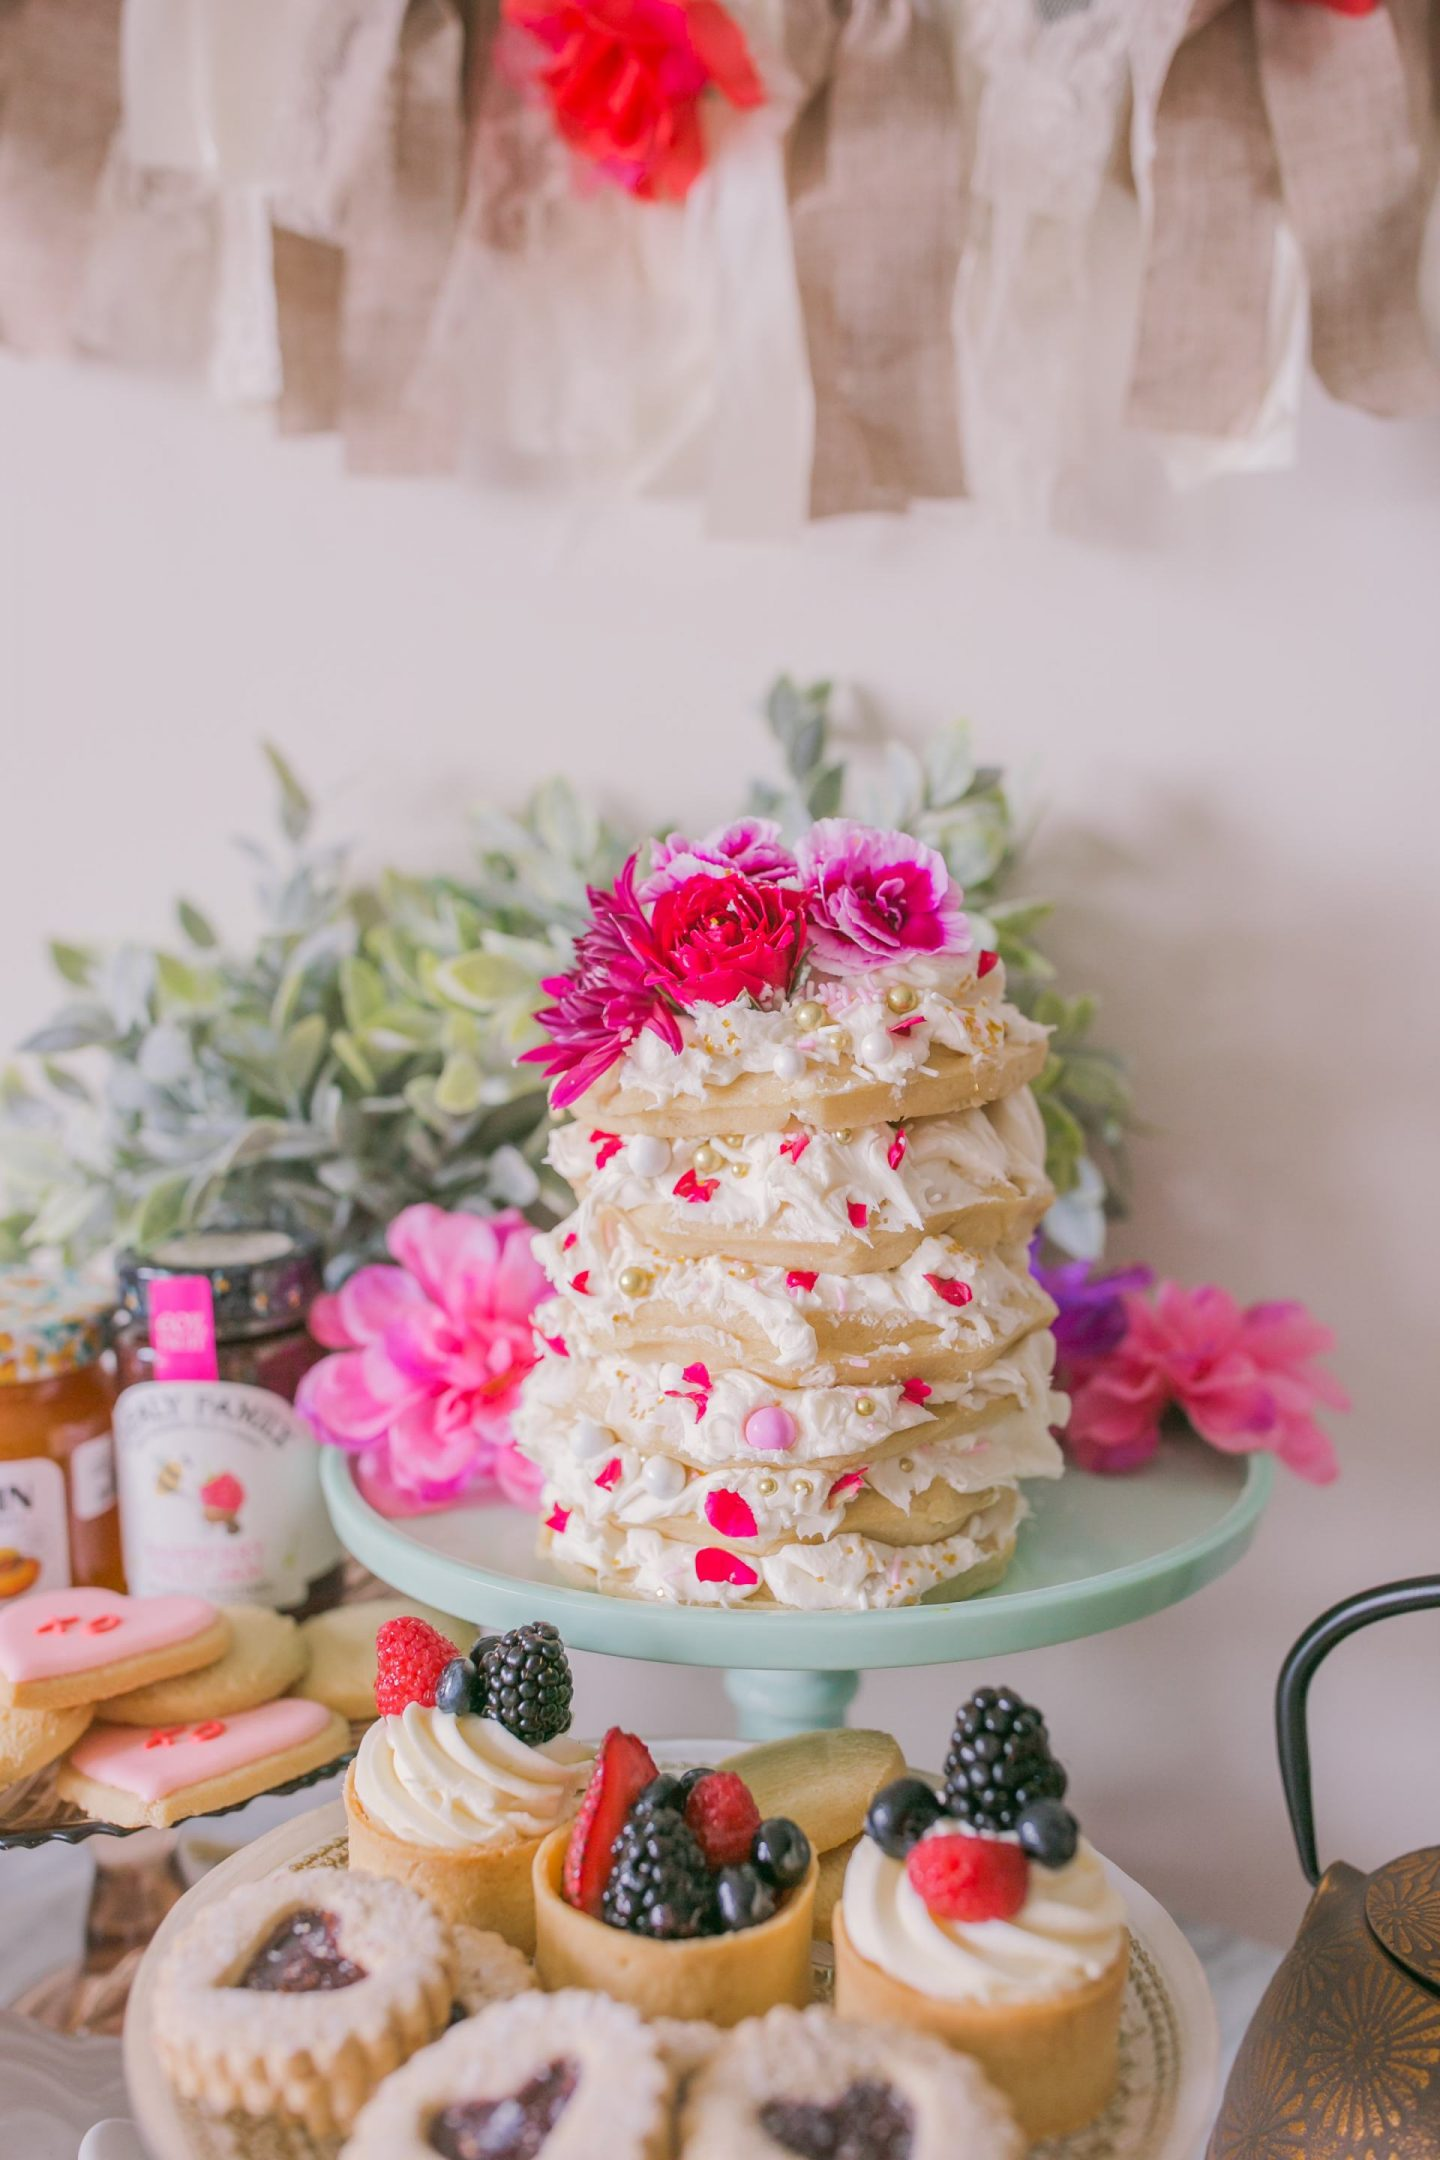 Easy to make Valentines Day waffle cake at home for the pefect Galentine's celebration